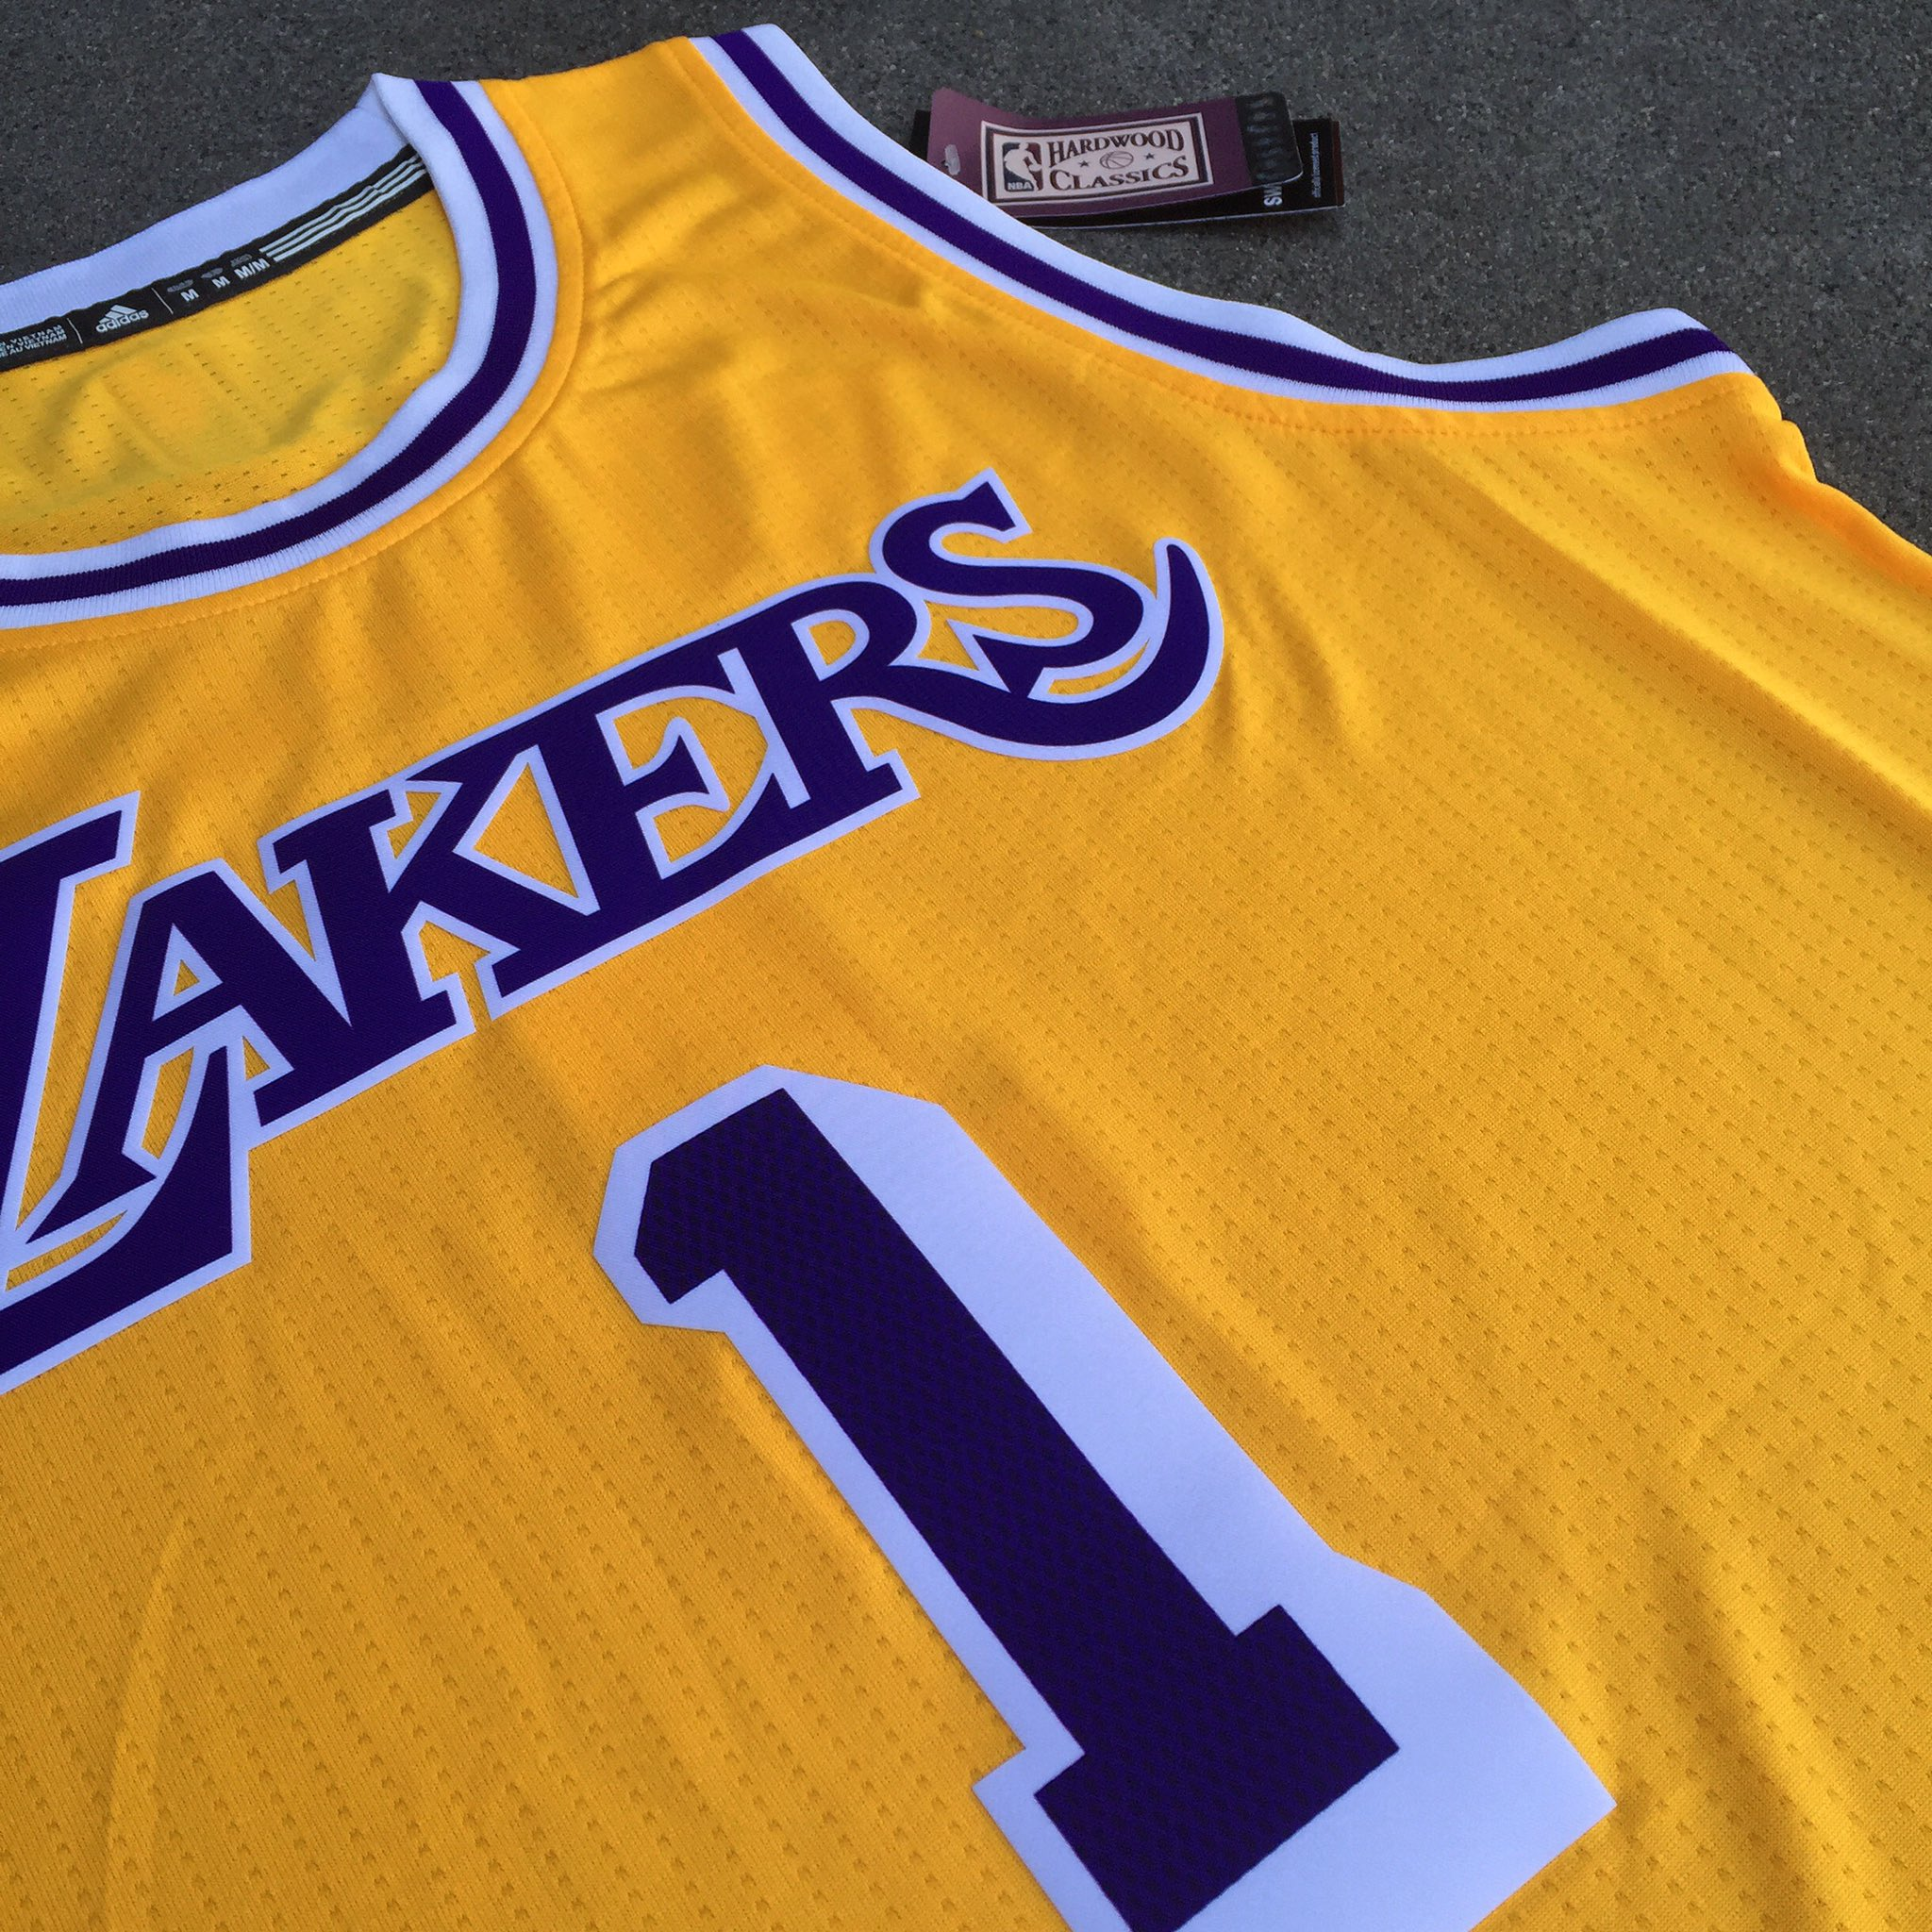 Los Angeles Lakers - Fan Shop. Showing 40 of results that match your query. Search Product Result. Product - NBA Los Angeles Lakers 50